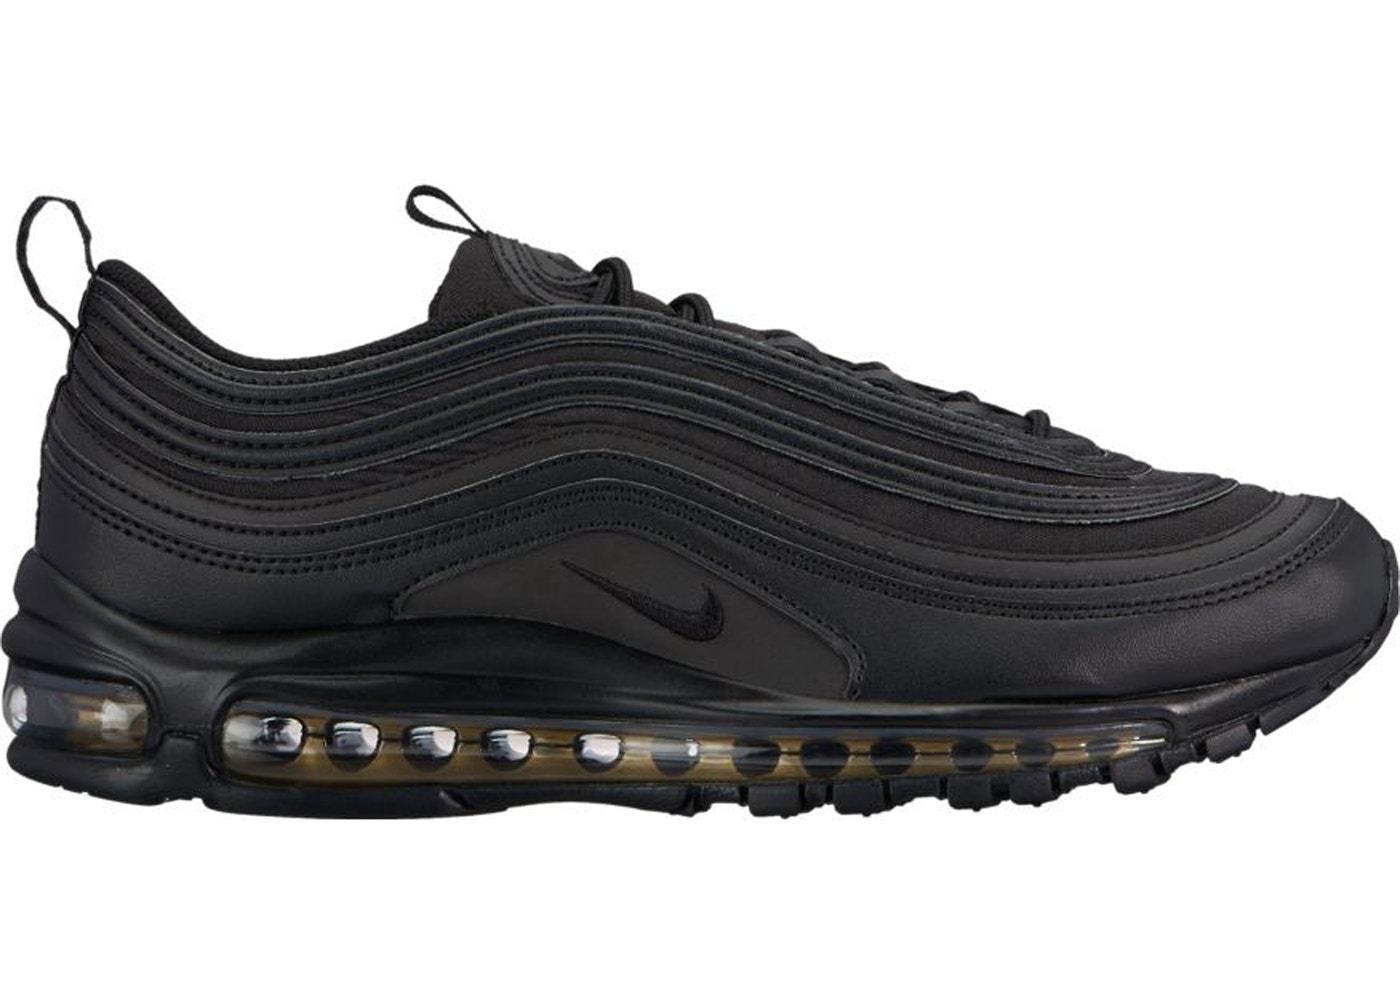 nike air max 97 black and gold reflective